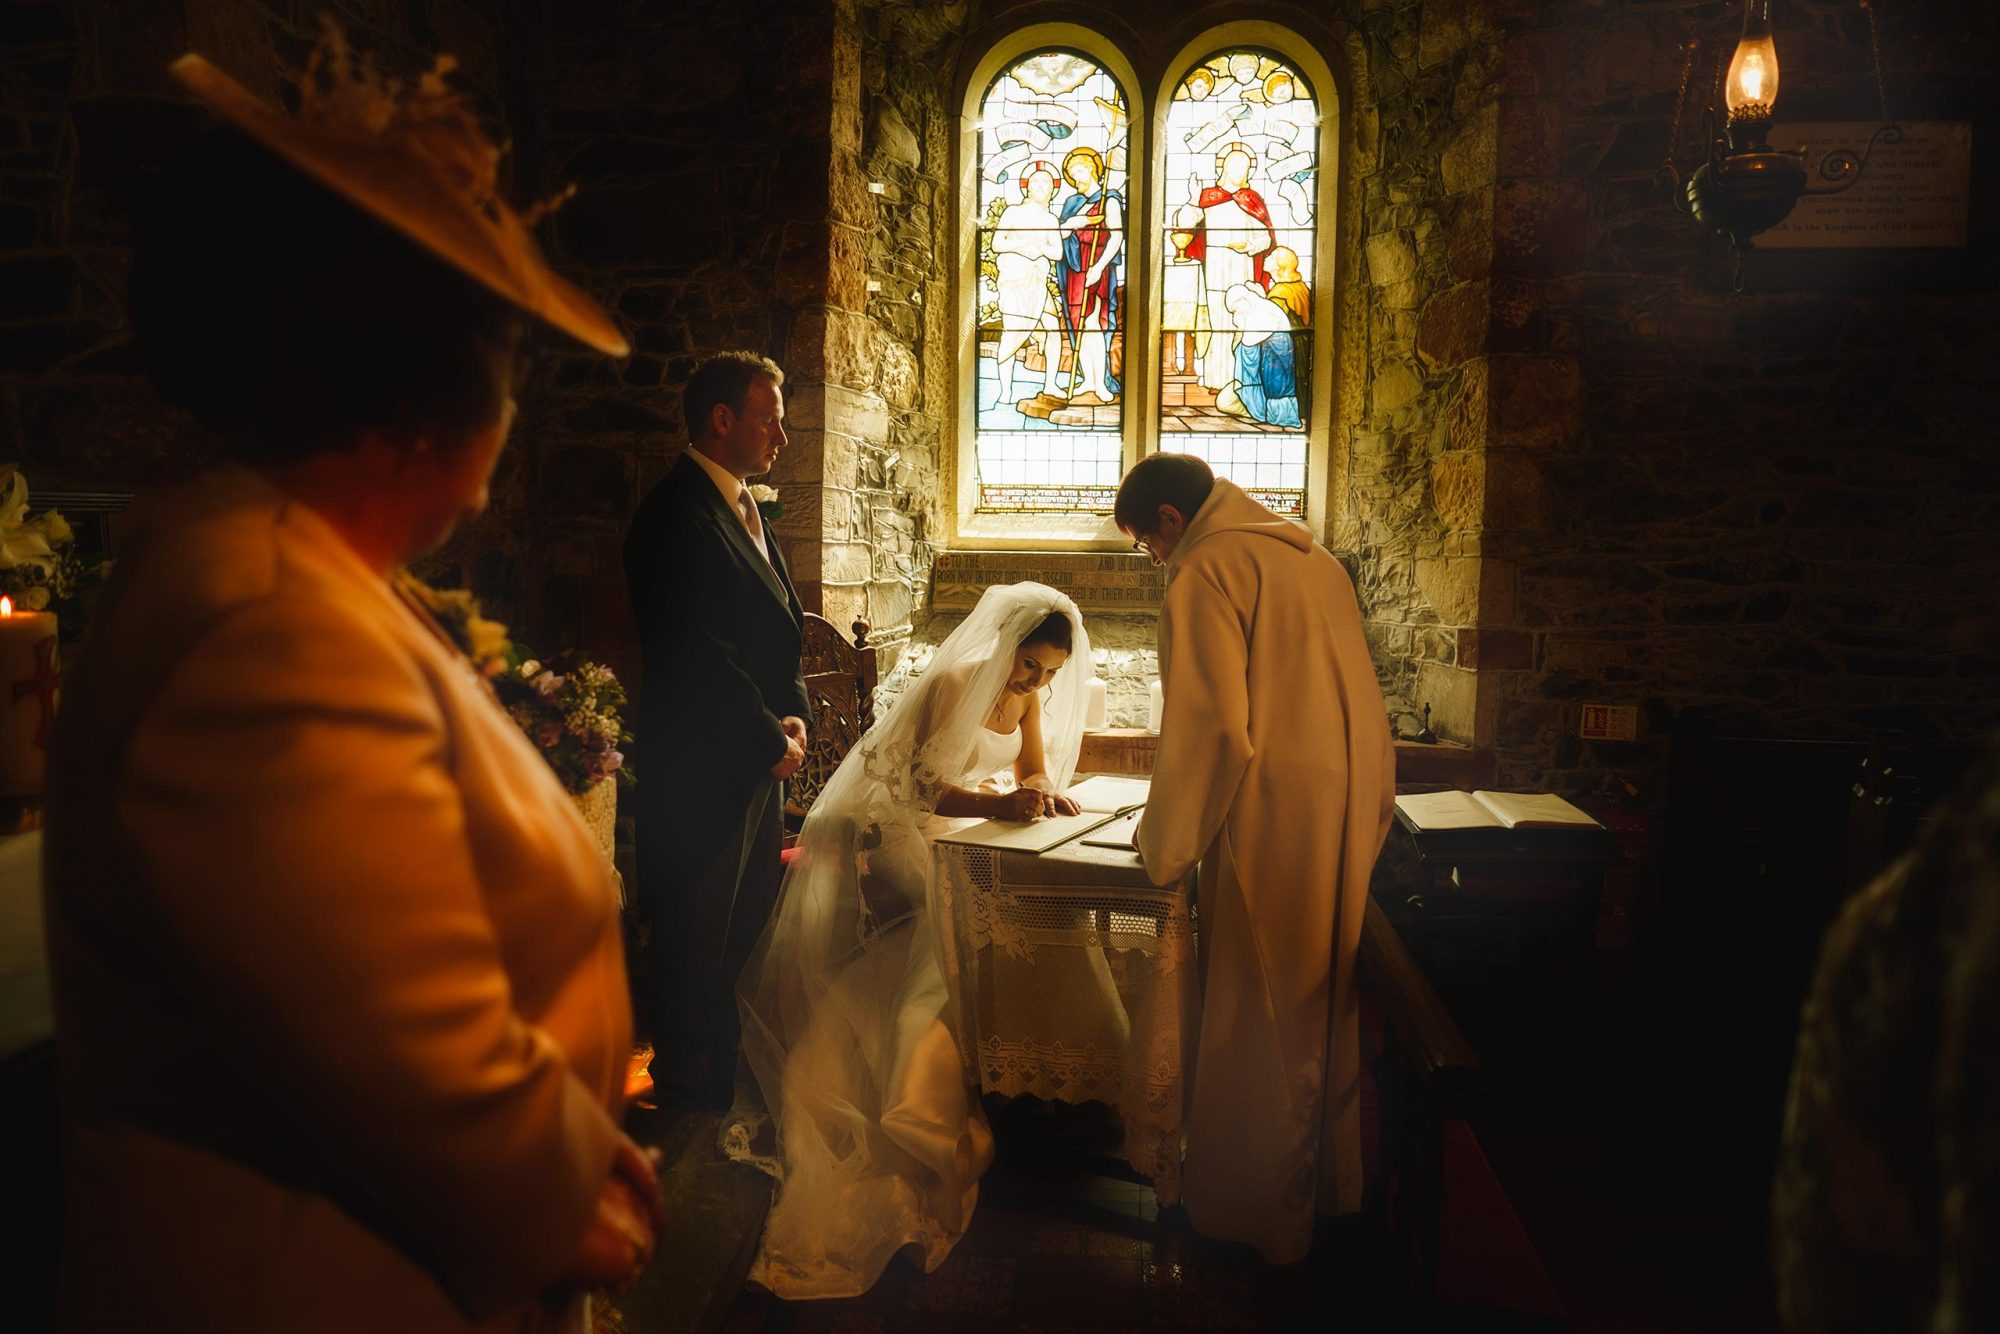 Bride signing the marriage certificate captured by Shropshire wedding photographer PbArtWorks